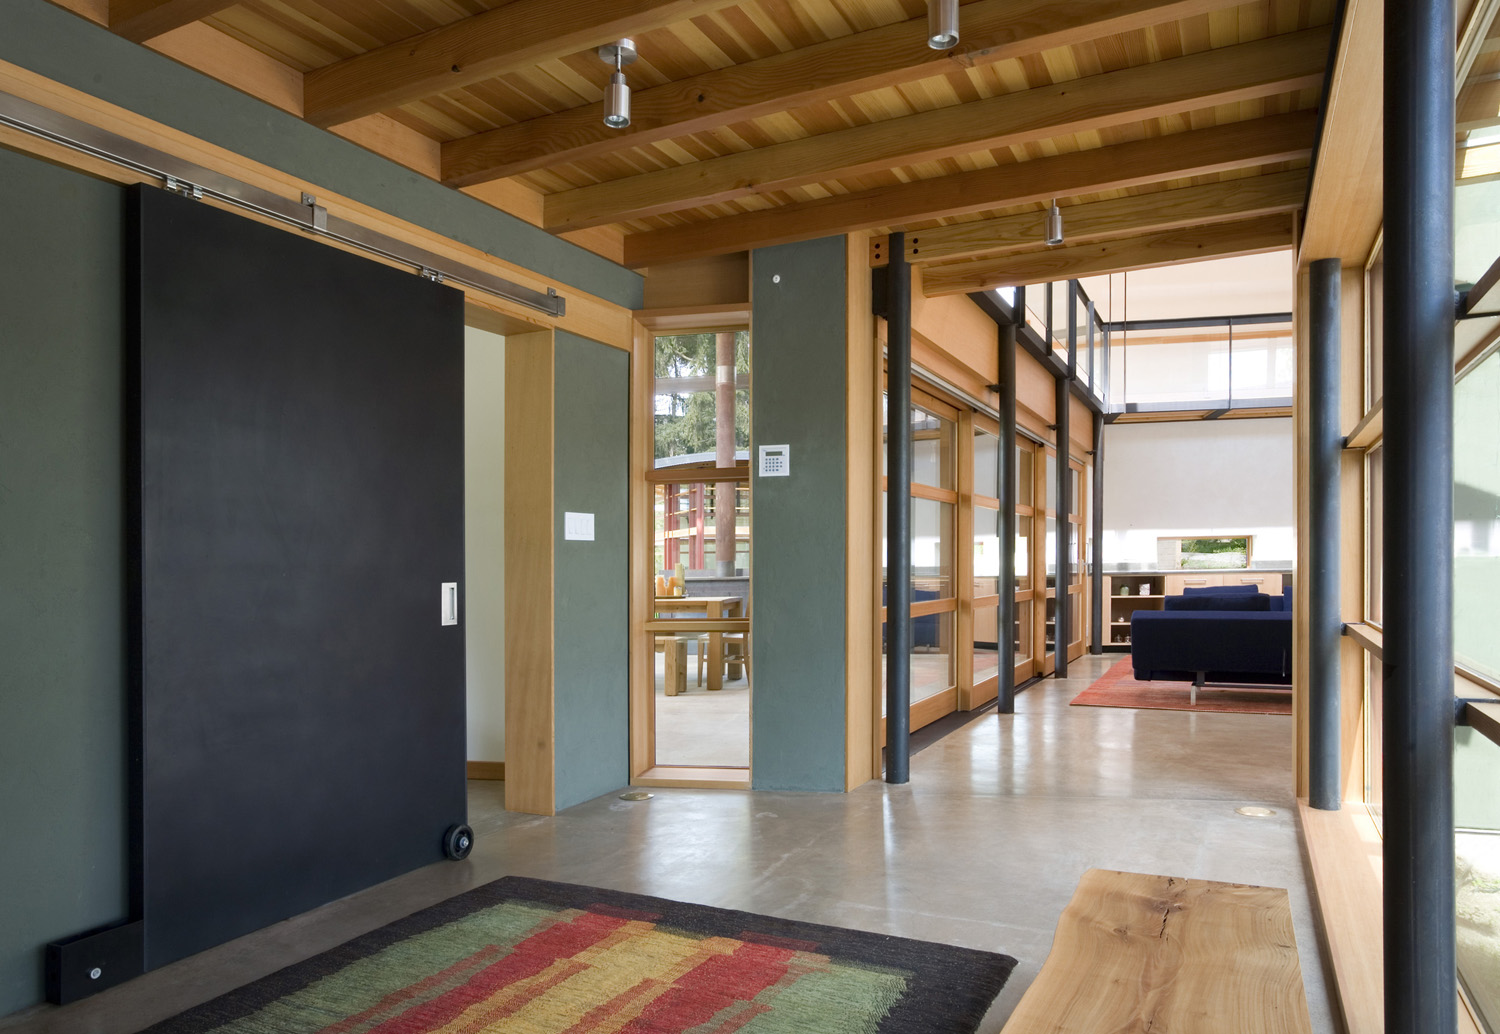 Modern Industrial Suburban House In Seattle With Curved Roof IDesignArch Interior Design